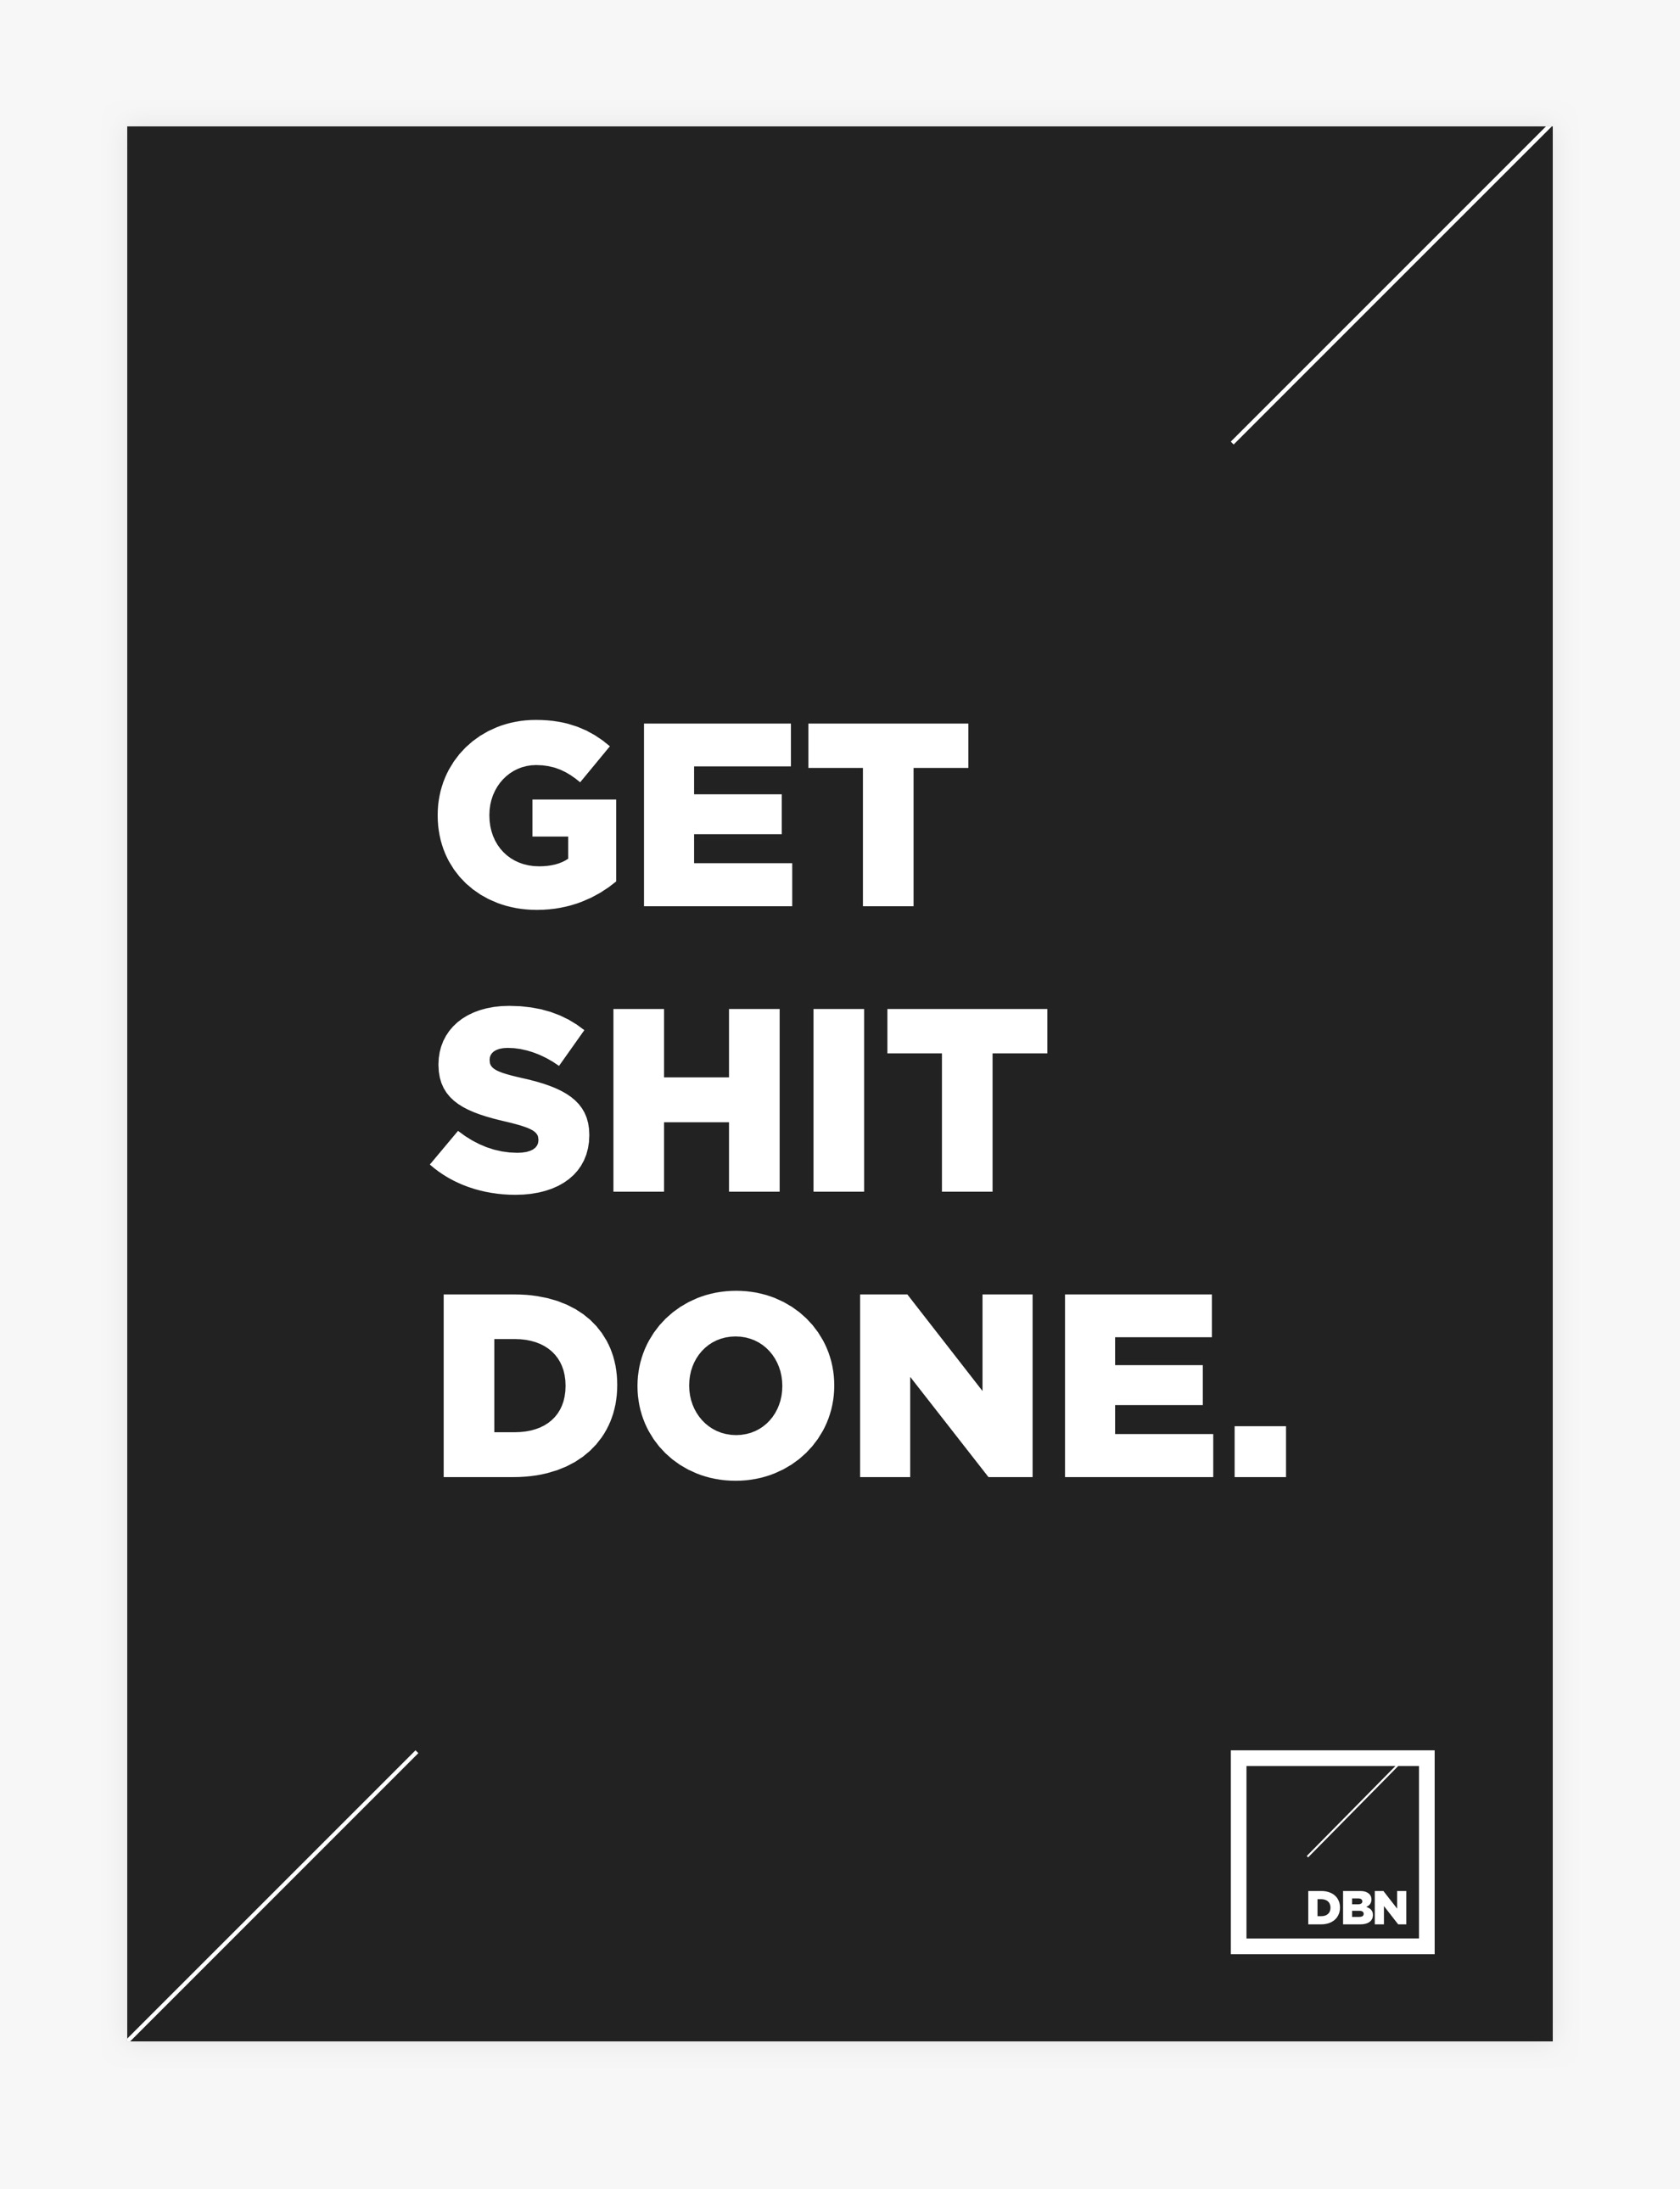 Design By Newconcept - Get Shit Done!